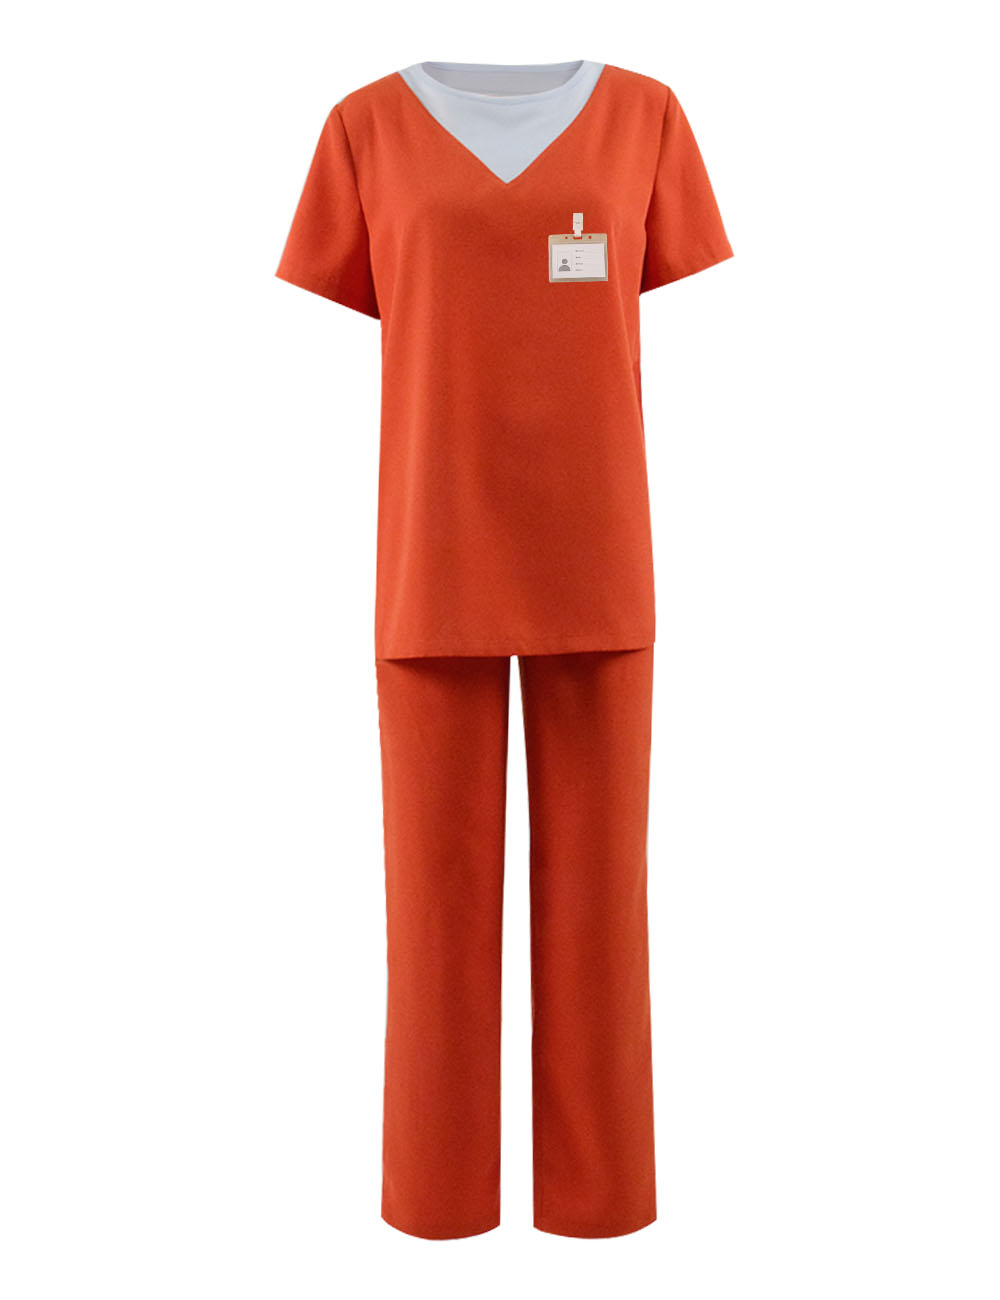 Orange is the New Black Piper Chapman Cosplay Costume Full Set